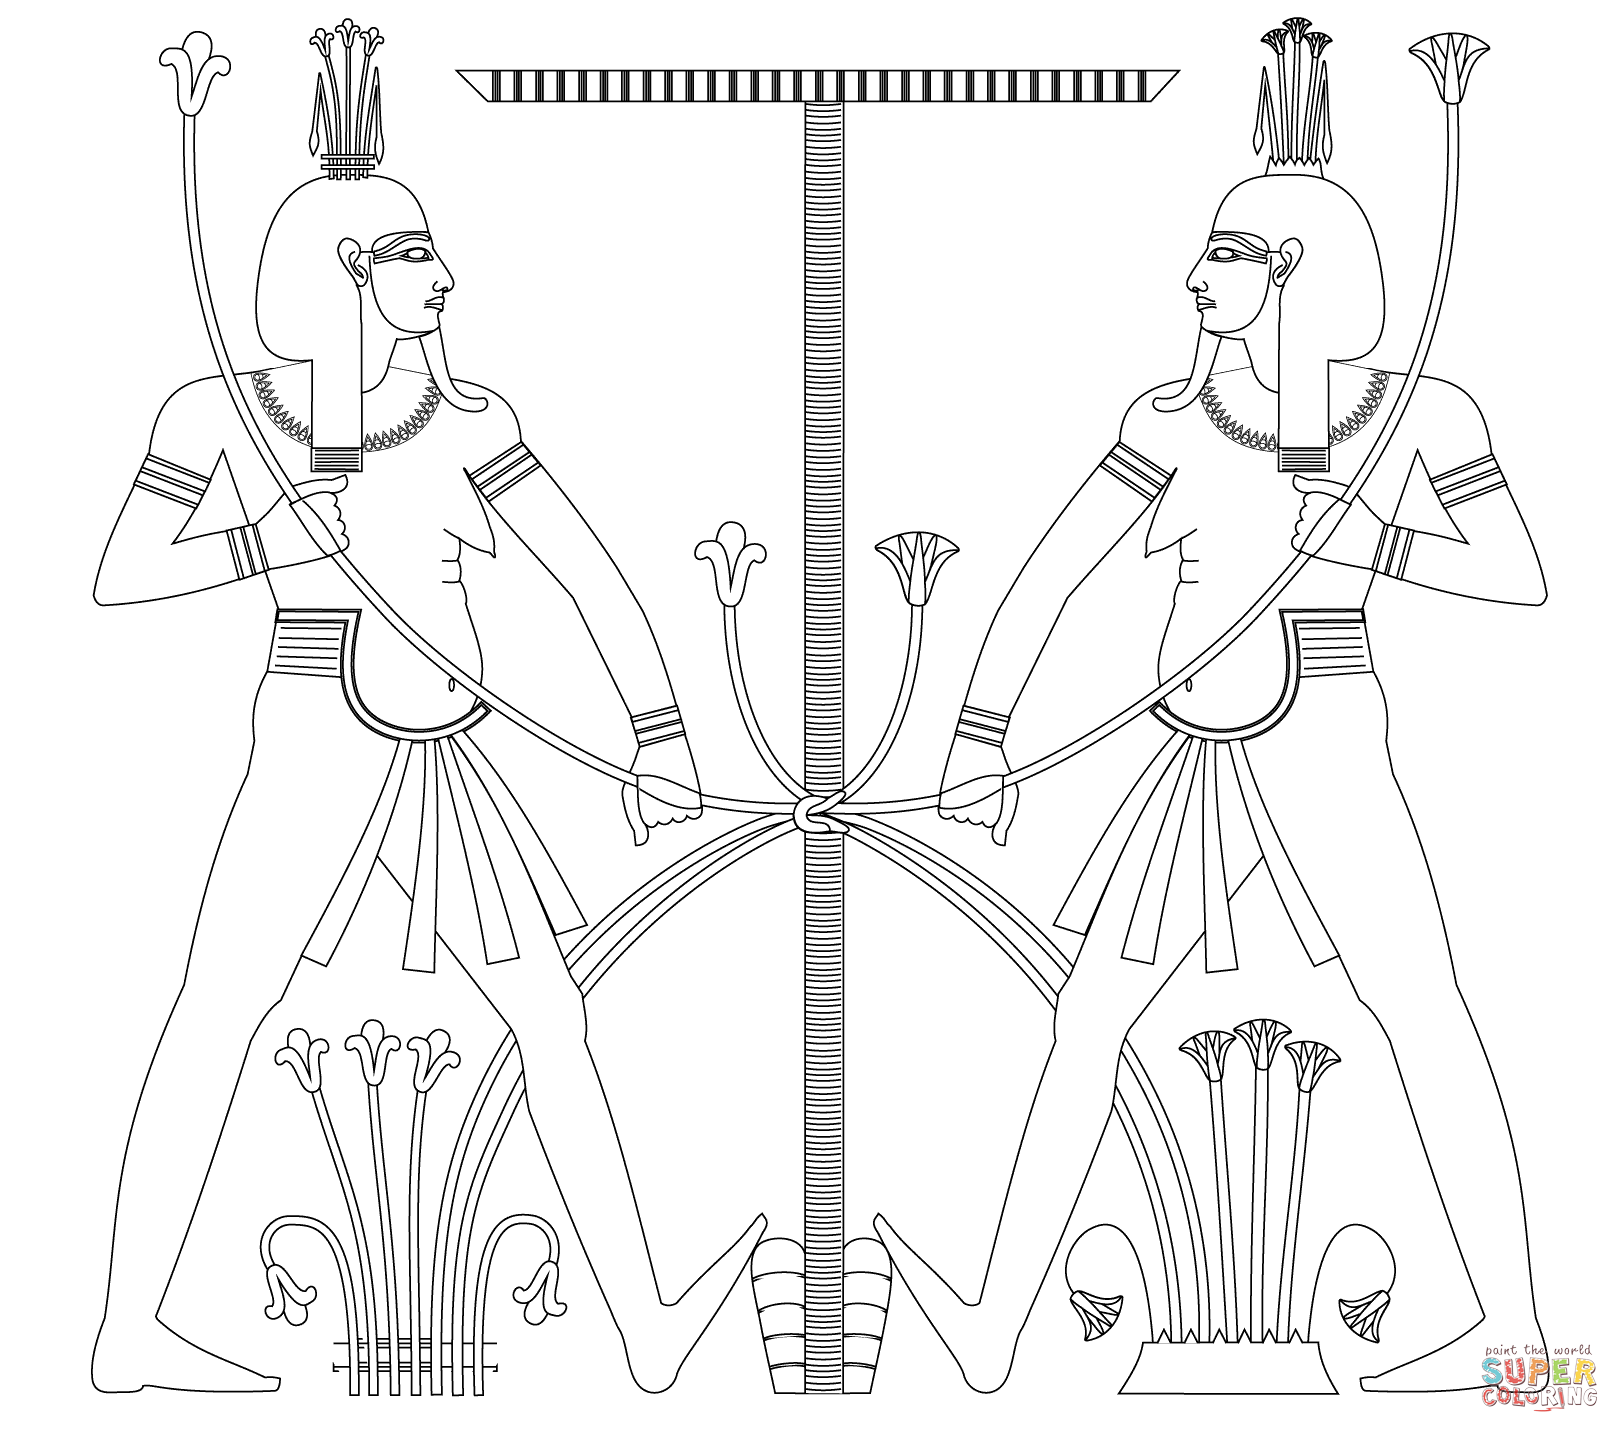 egypt map coloring page - sphinx egypt drawing at free for